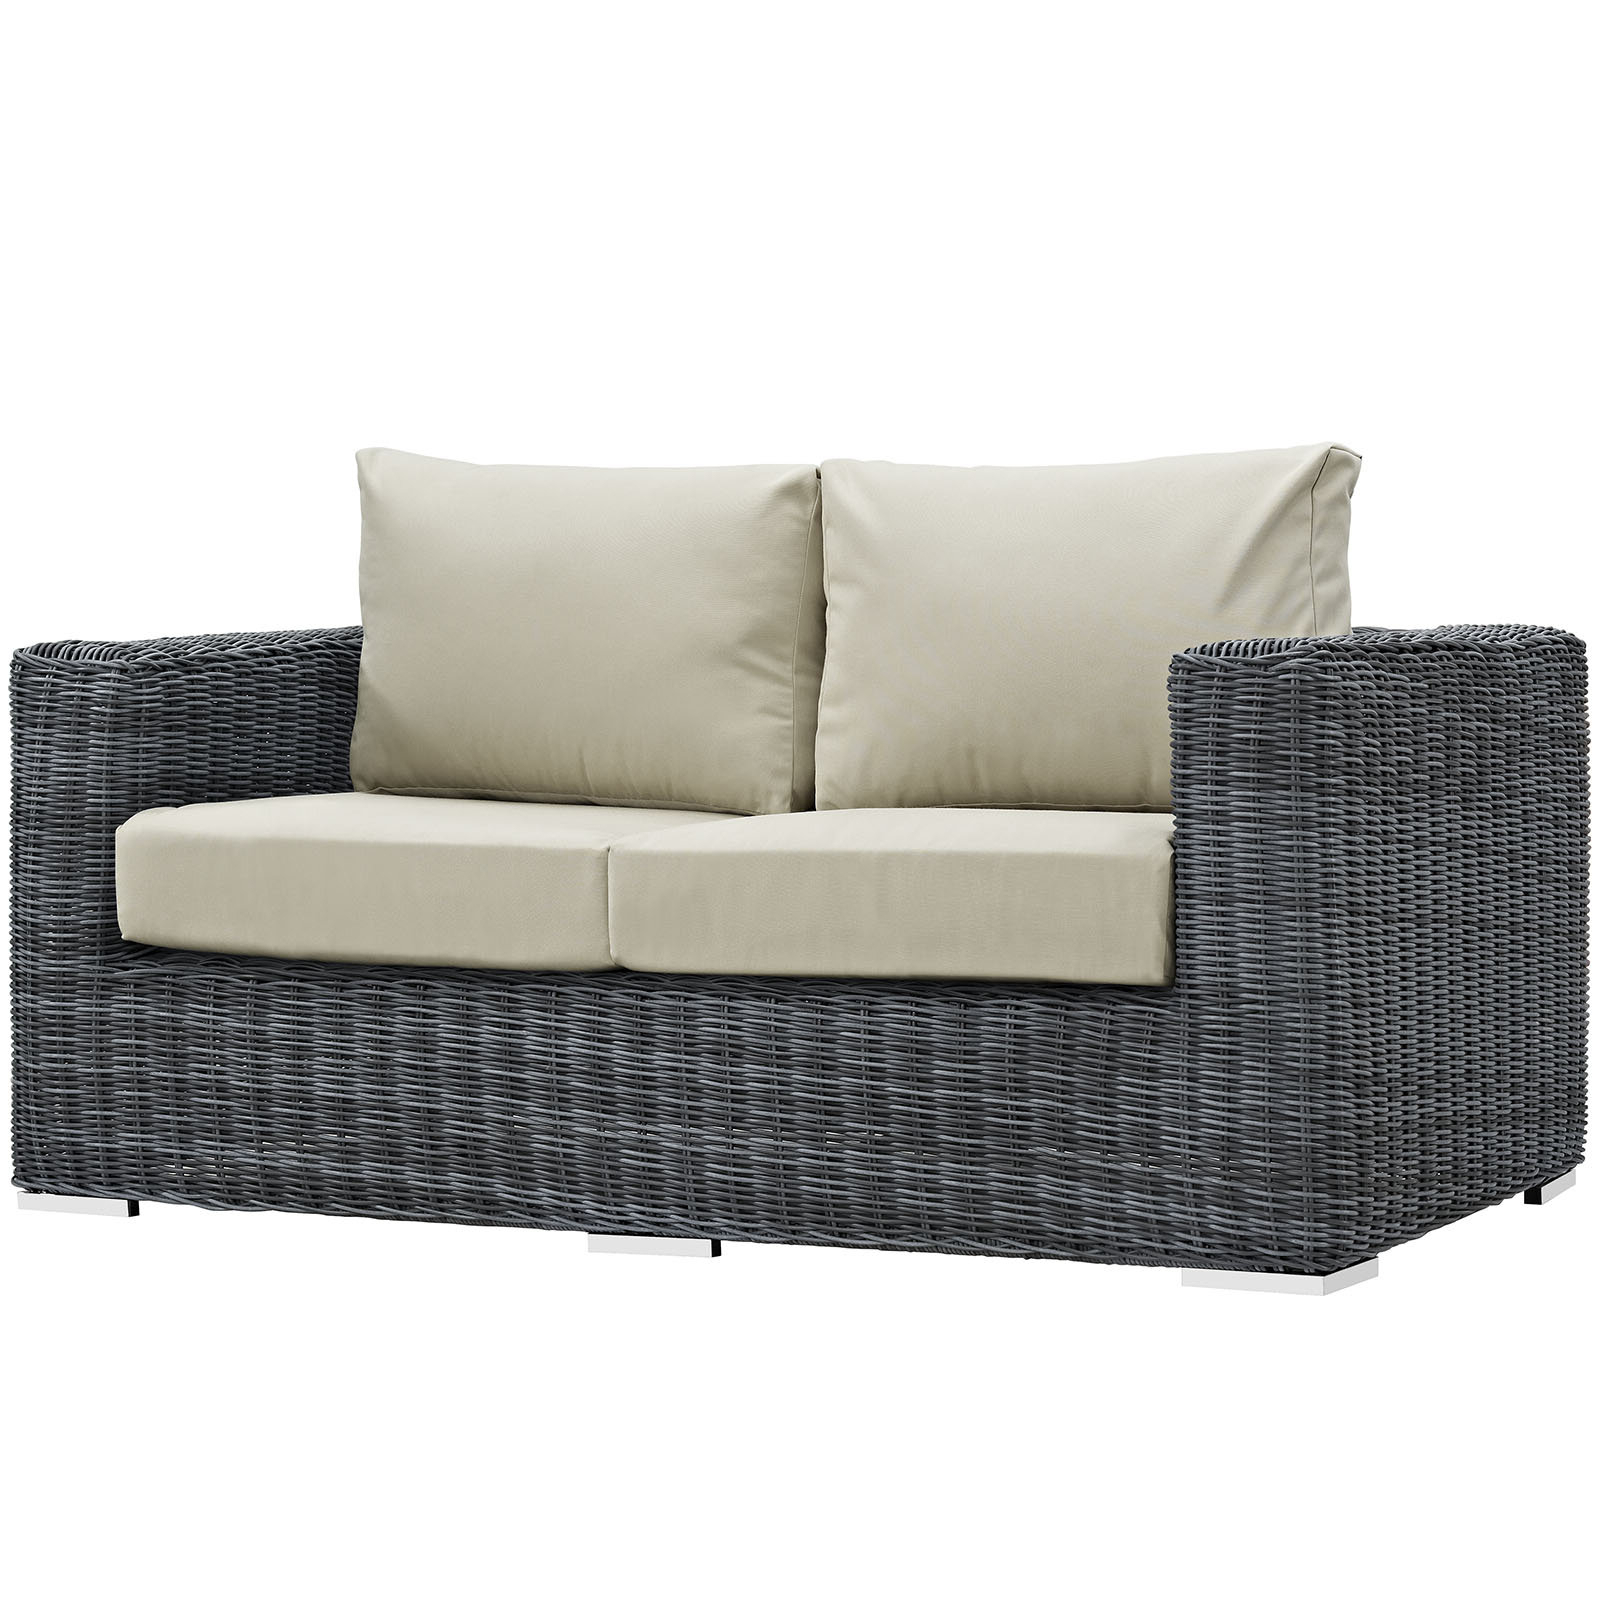 Favorite Keiran Loveseat With Cushions Intended For Keiran Daybeds With Cushions (View 6 of 20)